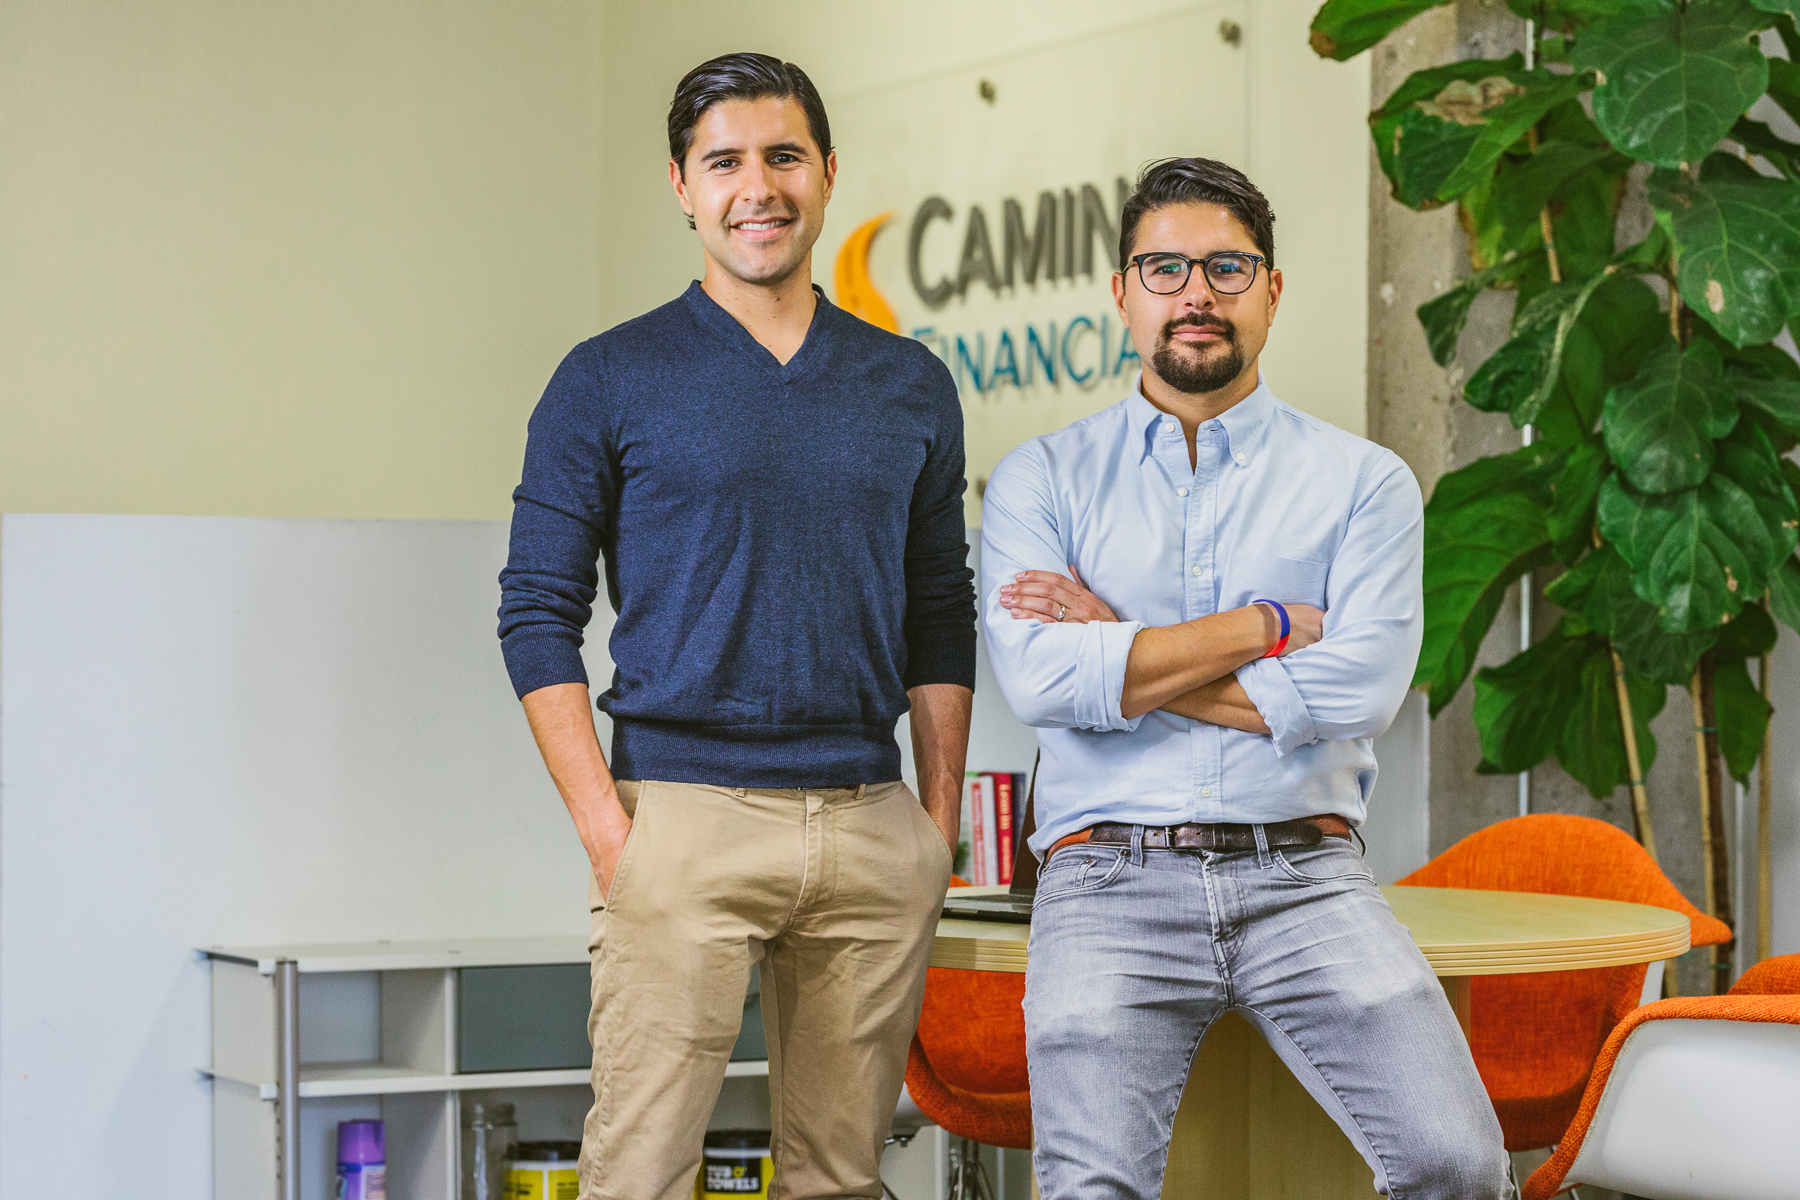 Sean and Kenny Salas at Camino Financial Office